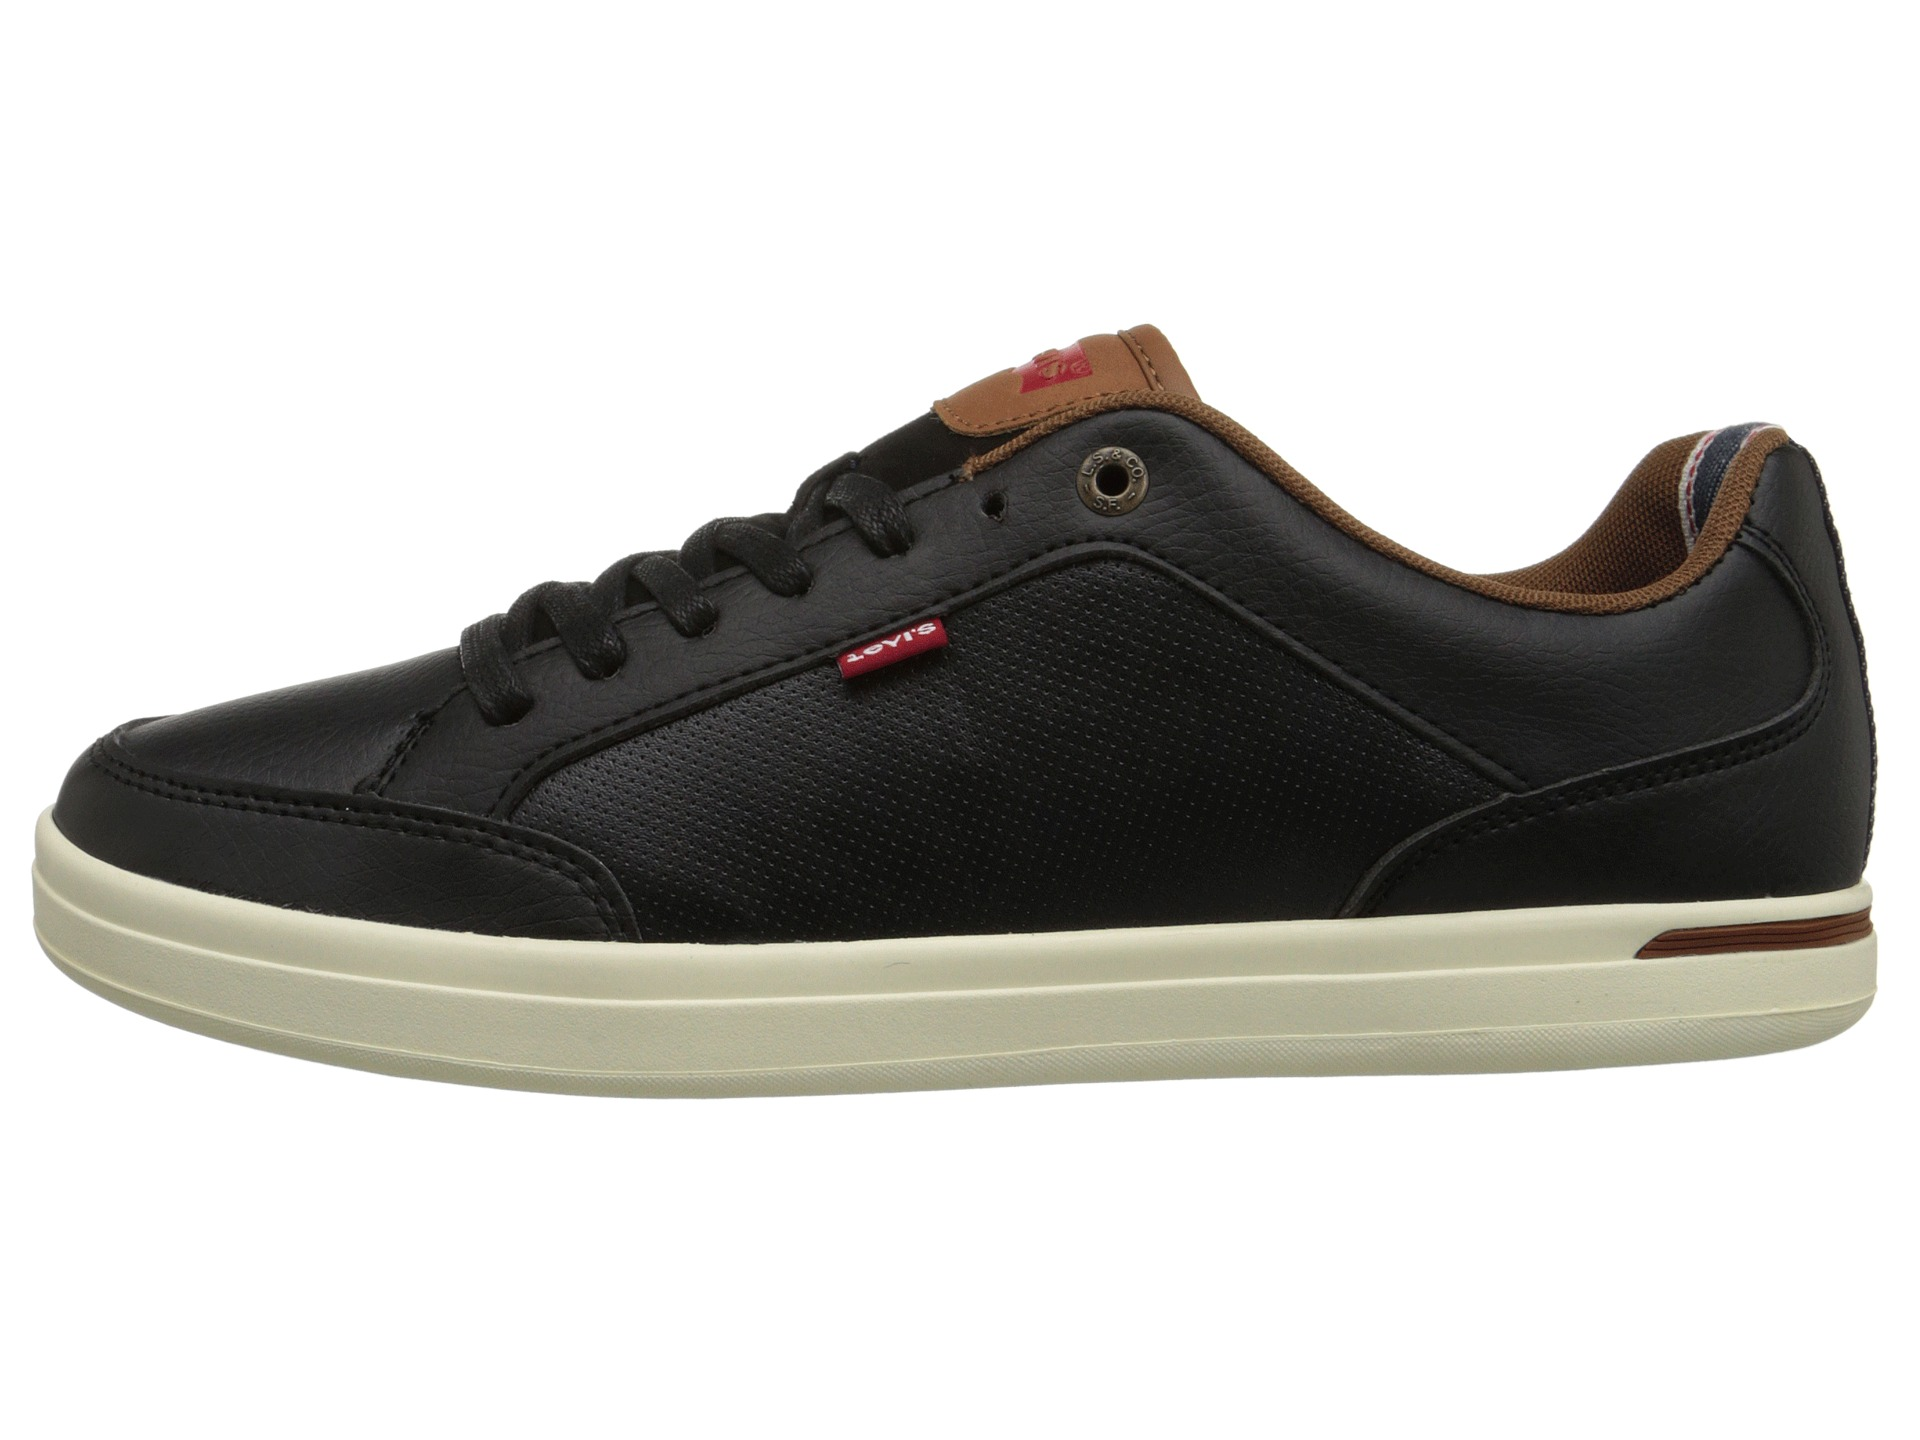 levi s 174 shoes aart tumbled nappa zappos free